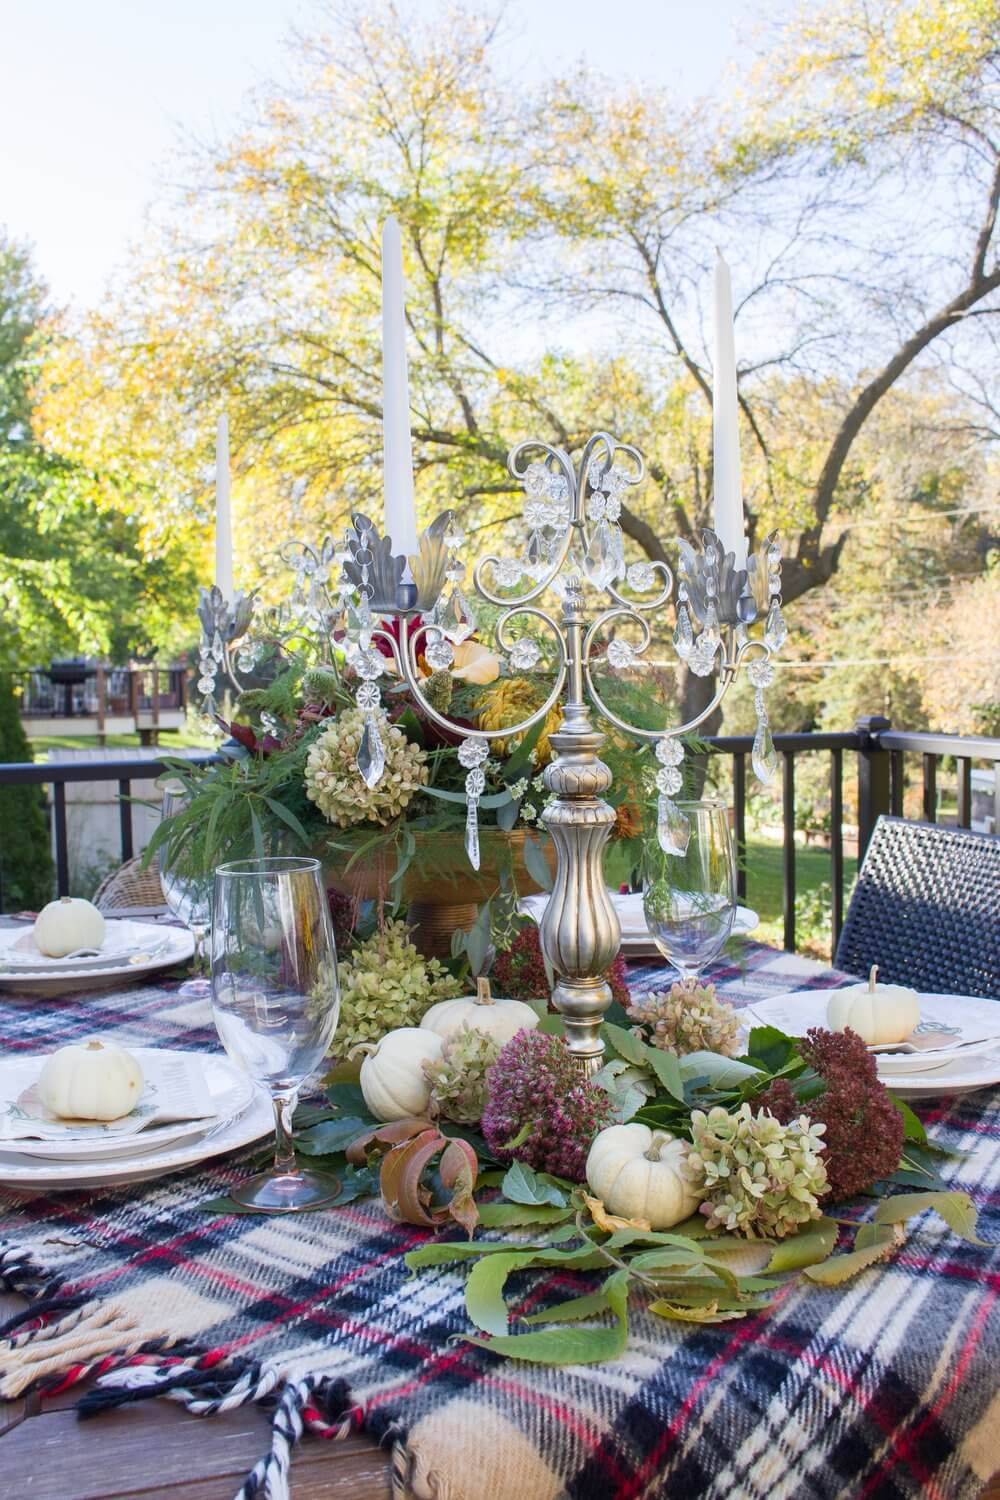 Elevate the Elegance Outdoors with Plaid